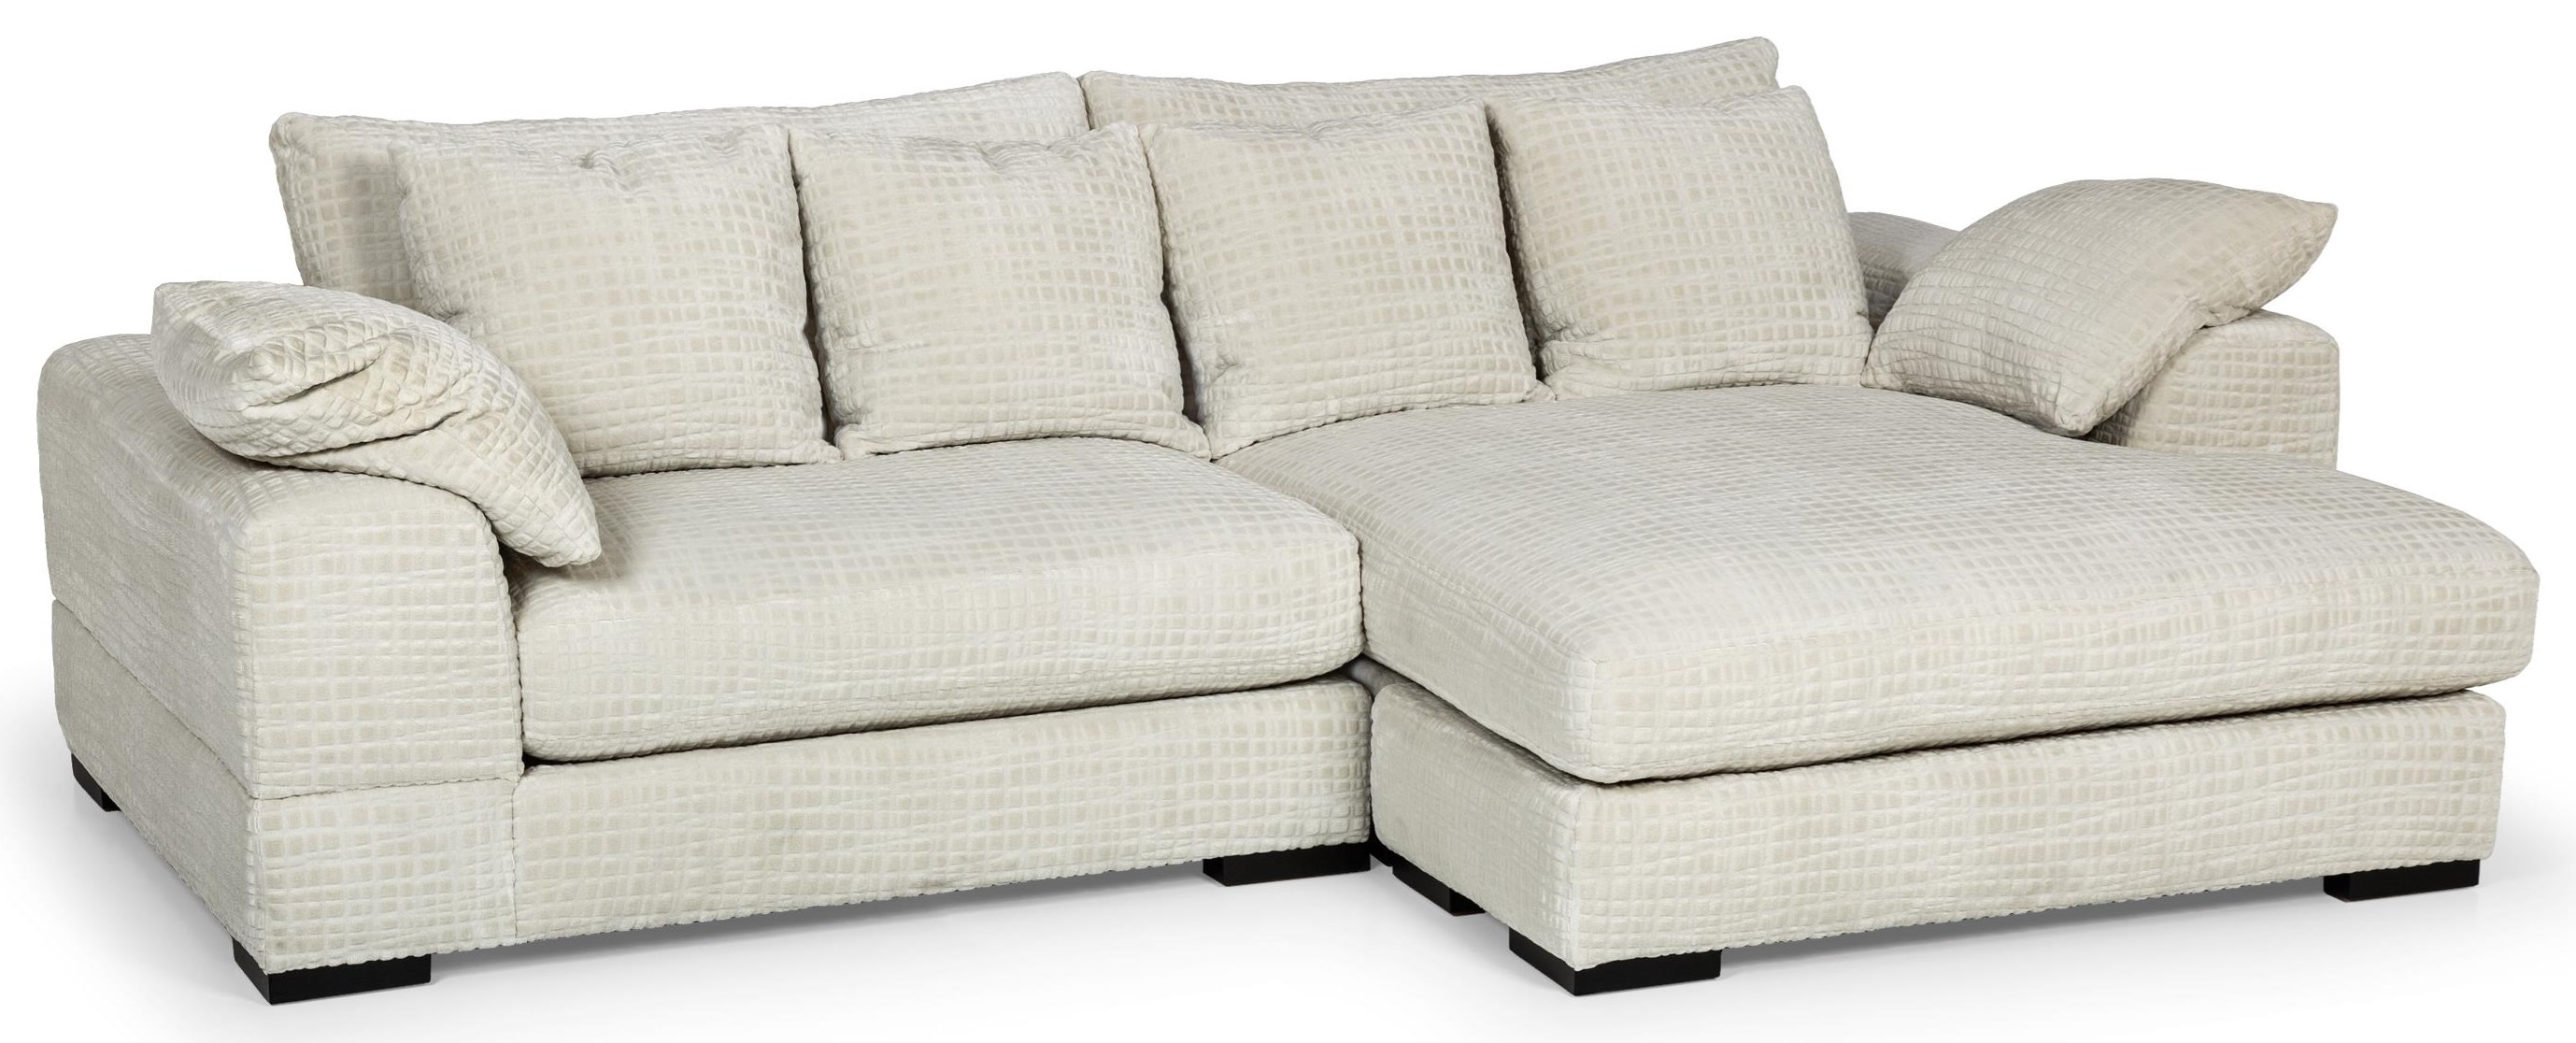 Two Piece Double Chaise Sectional Sofa